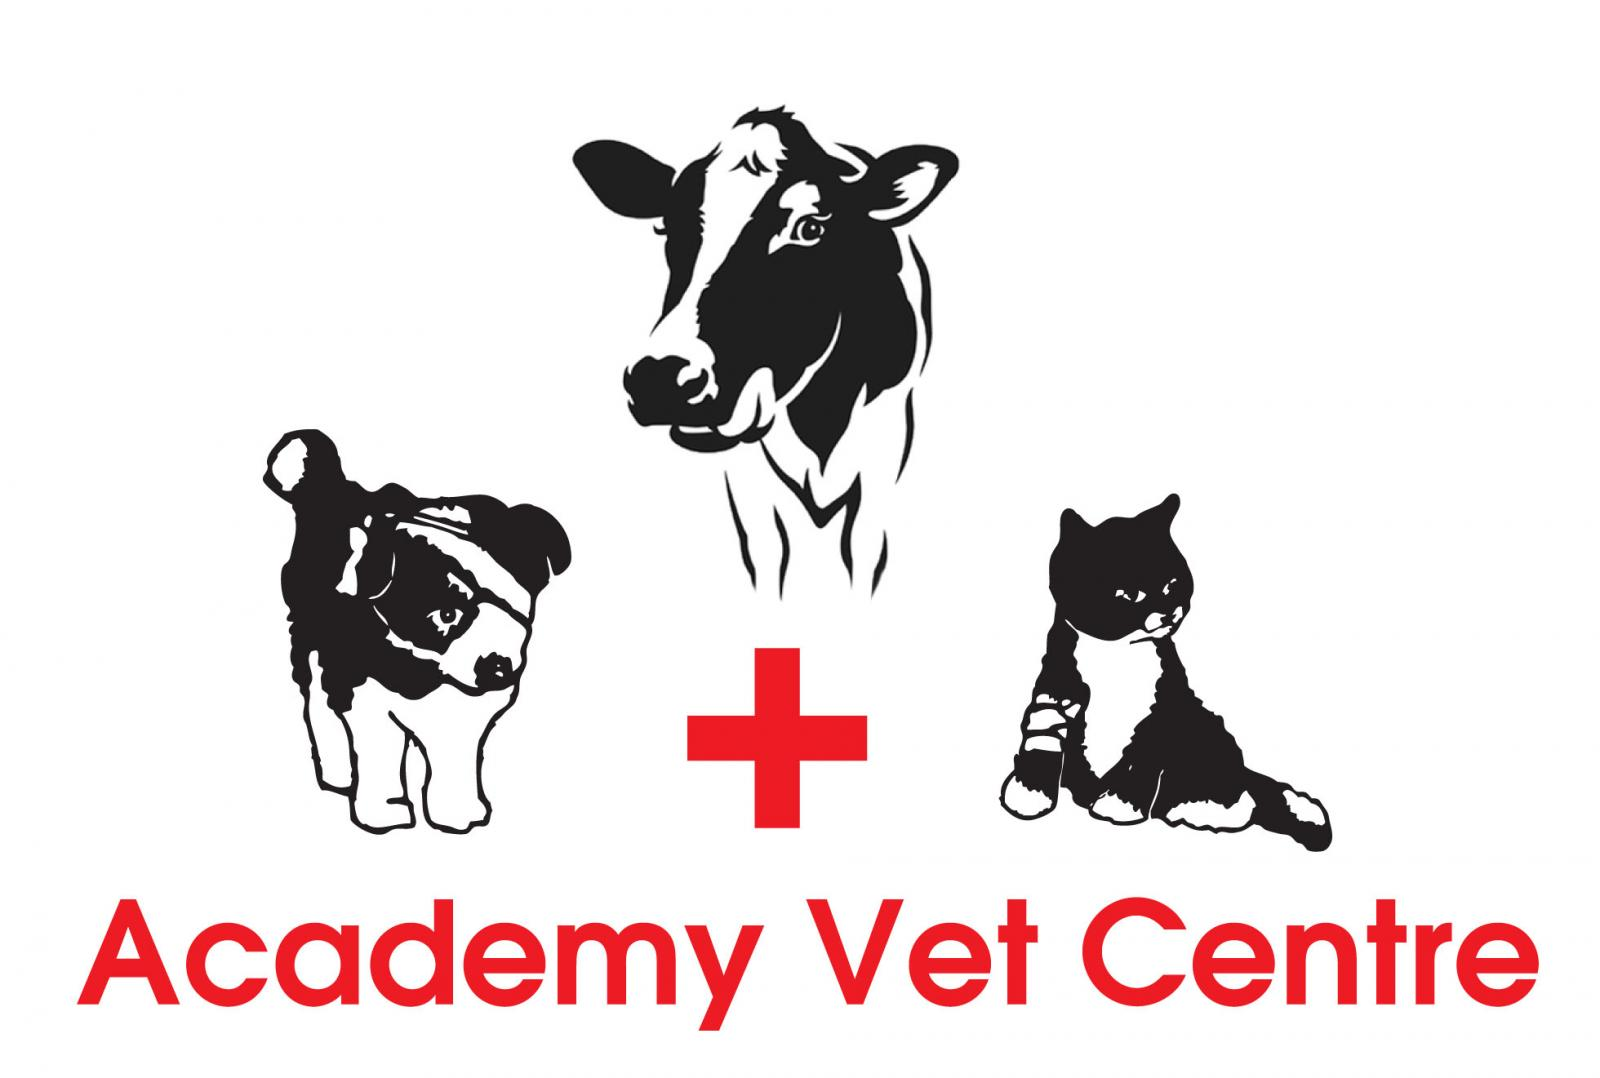 Academy Veterinary Centre